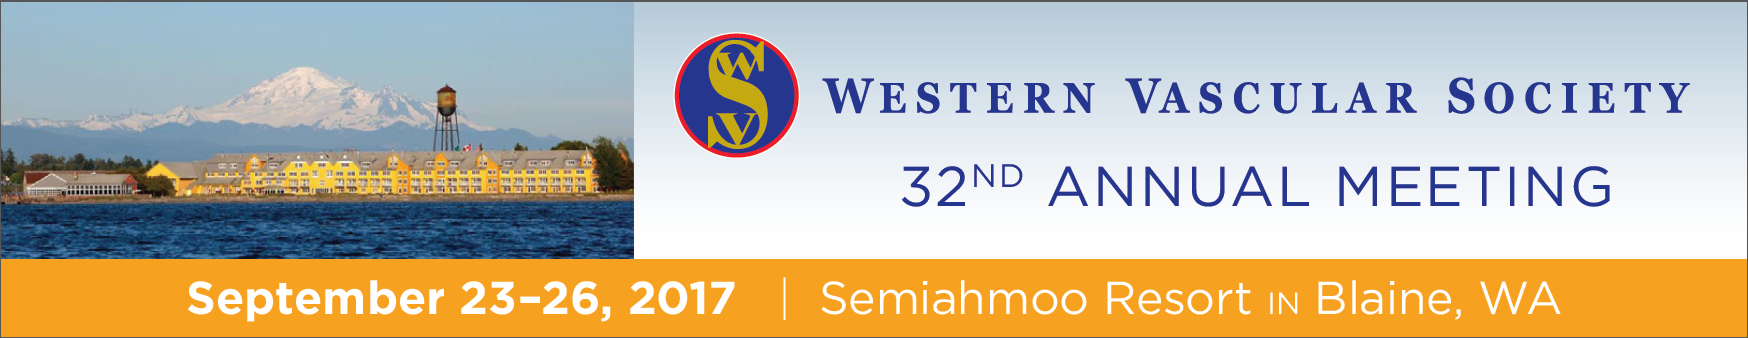 Western Vascular Society 2017 Annual Meeting